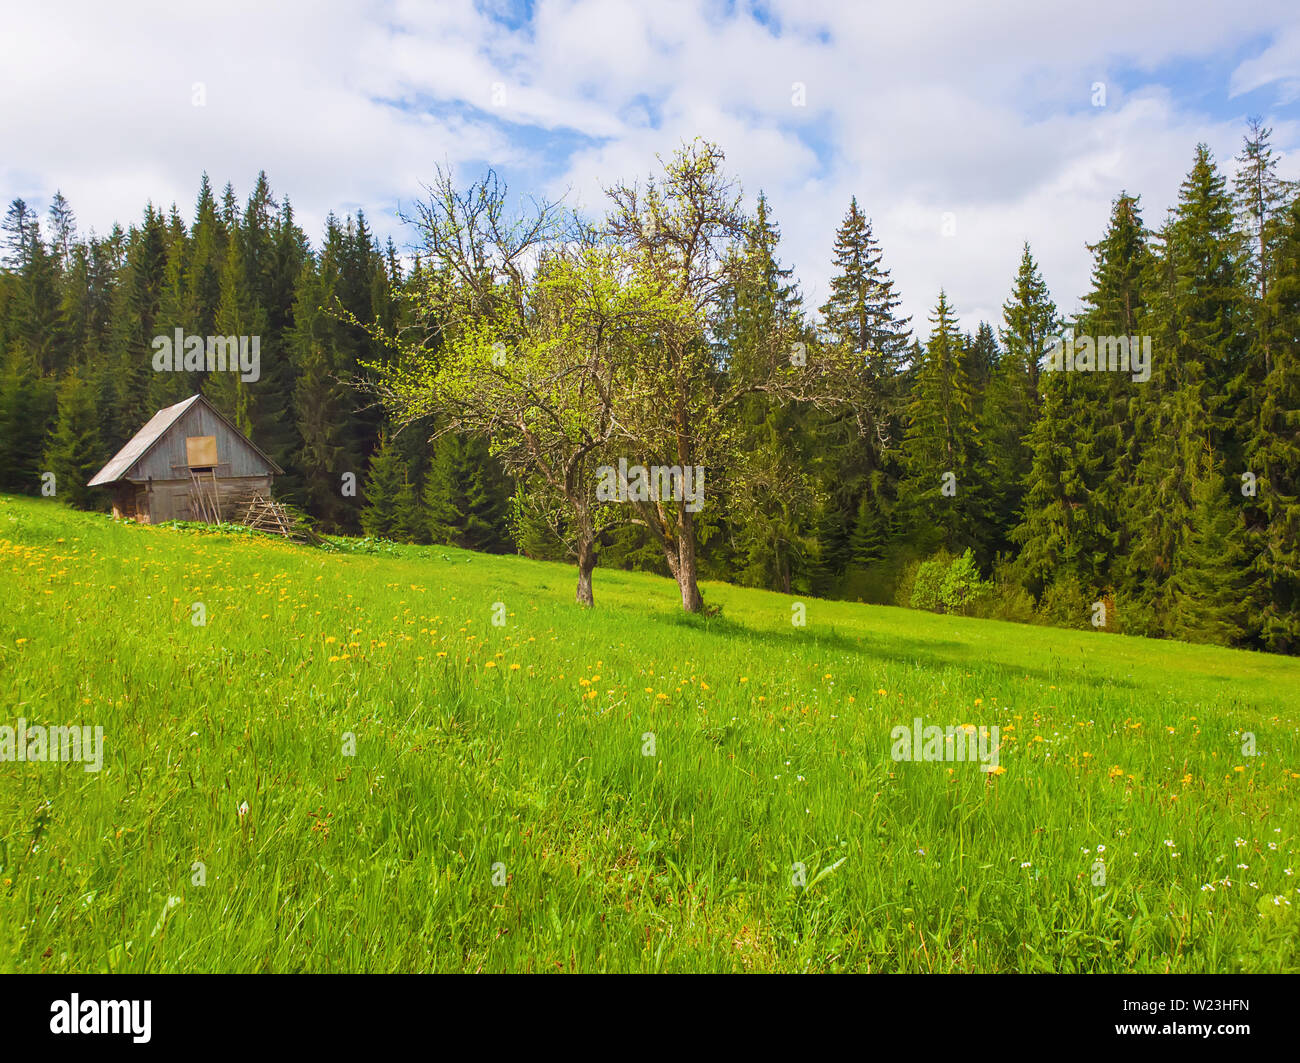 Wooden cabin in the fir forest, sunny spring day with green grass and flowering meadow. - Stock Image